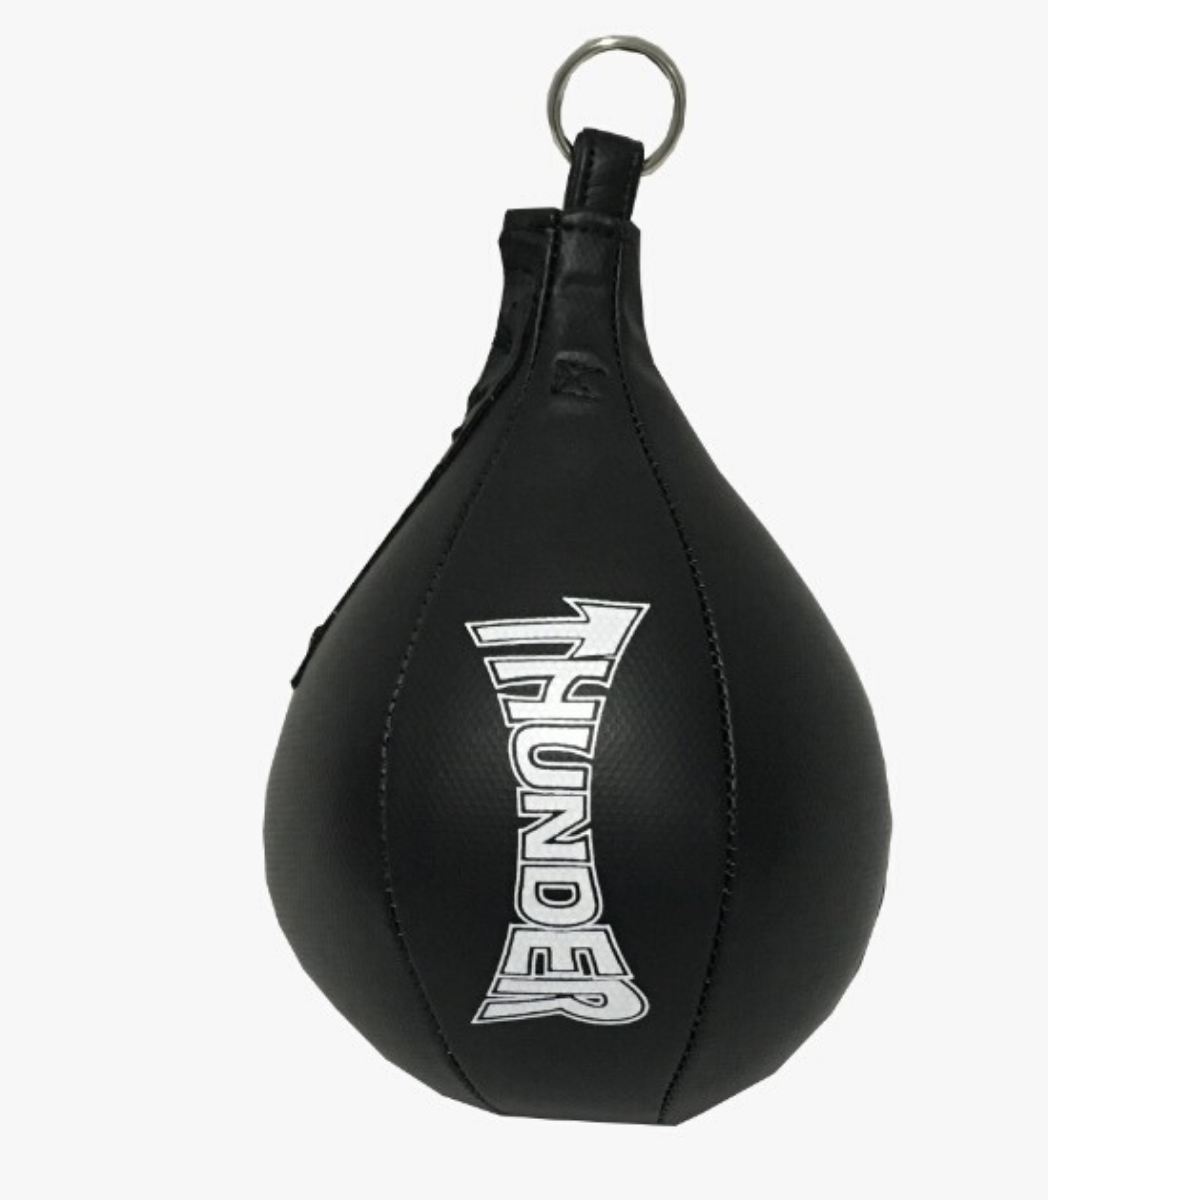 Punching Ball Treino Boxe Muay Thai - Pulser  - PRALUTA SHOP